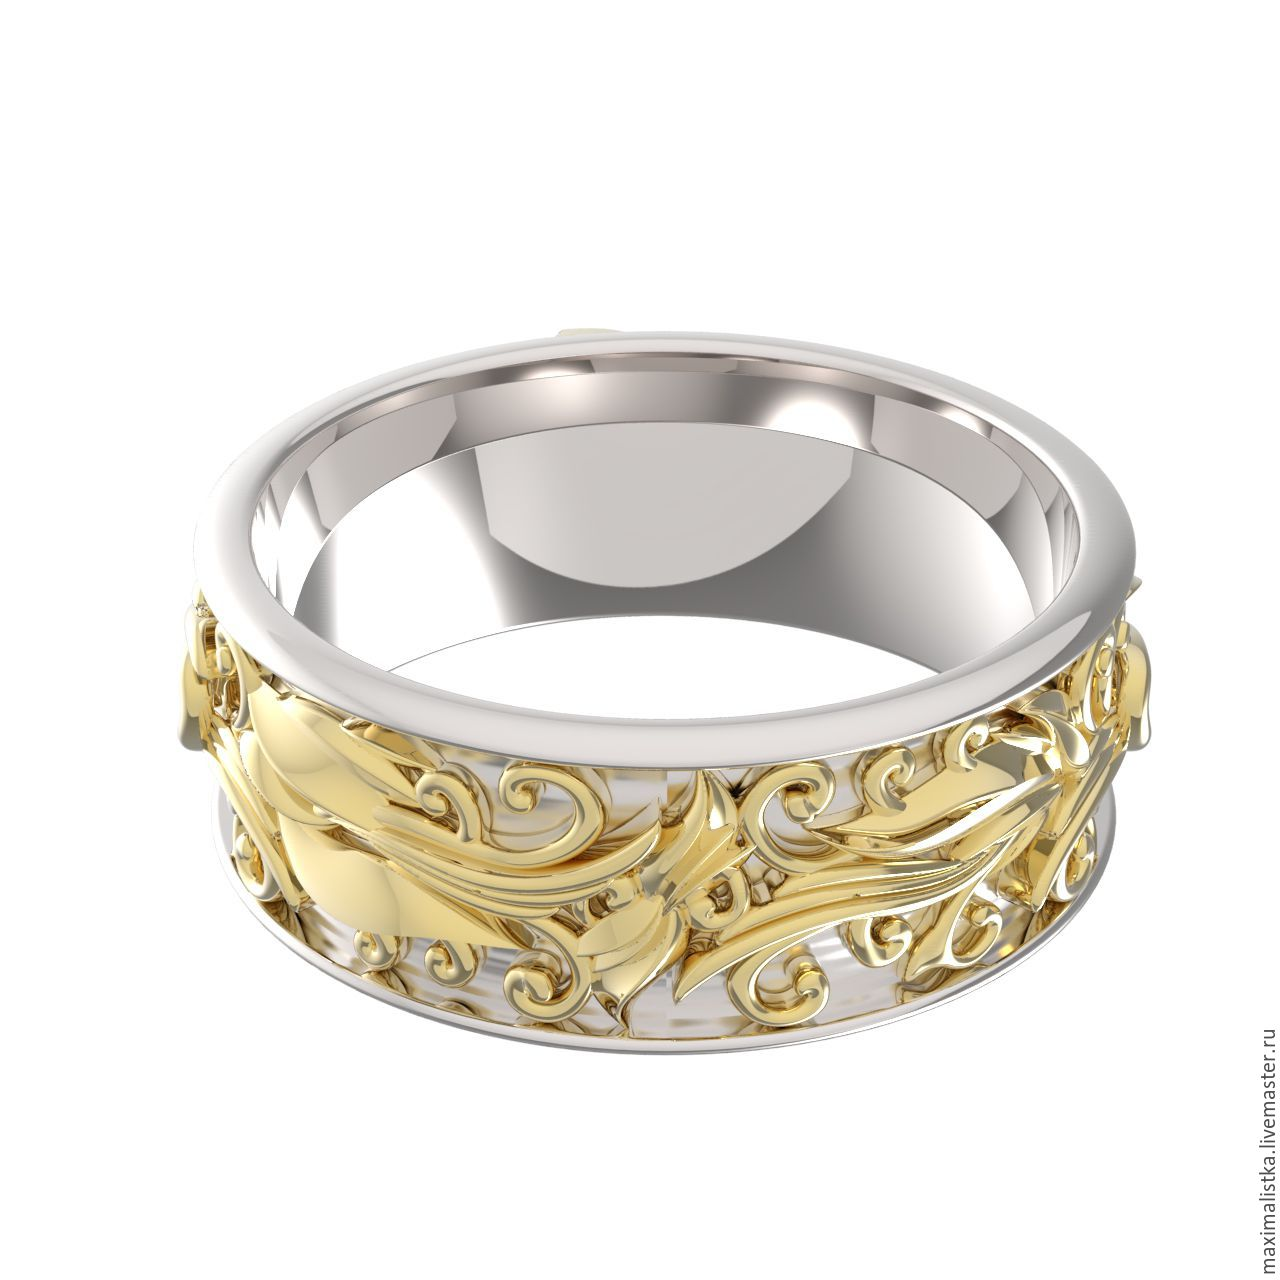 qxoixfw rings designs diamond golden by engagement lisa